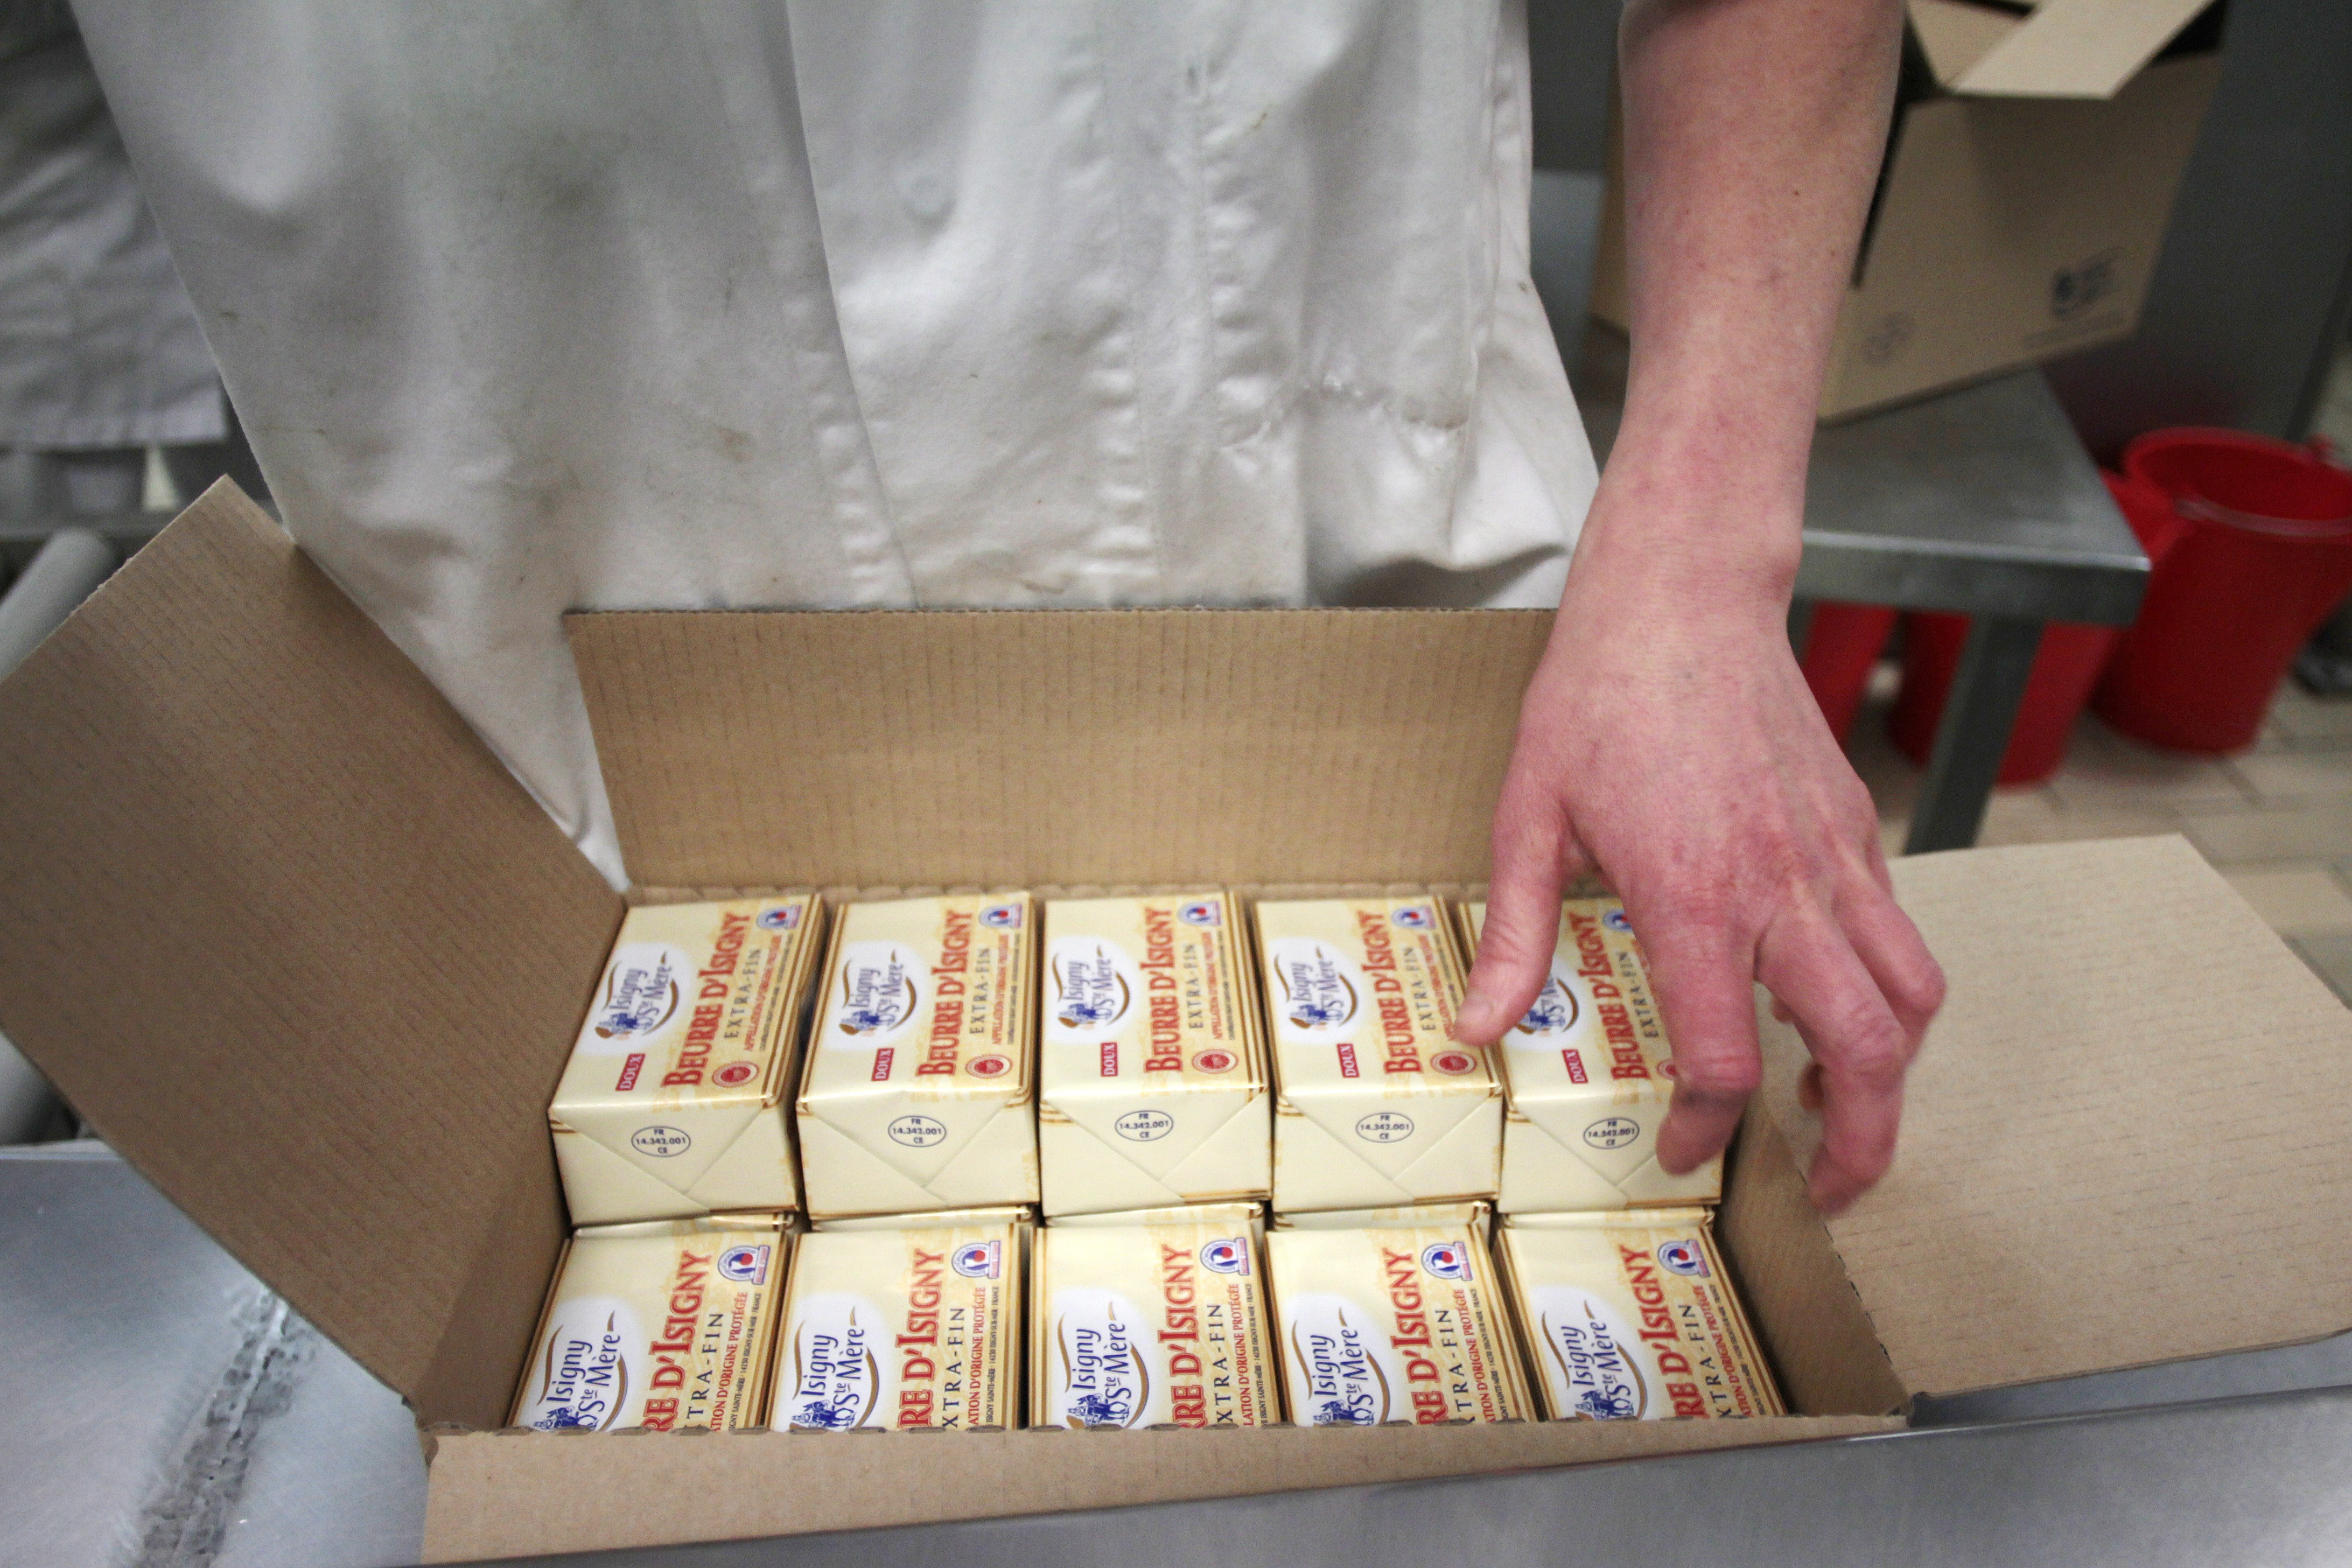 A worker packs butter at the production site of the Isigny-Sainte-Mere dairy co-operative in Isigny-sur-Mer, northwestern France, on April 4, 2014.